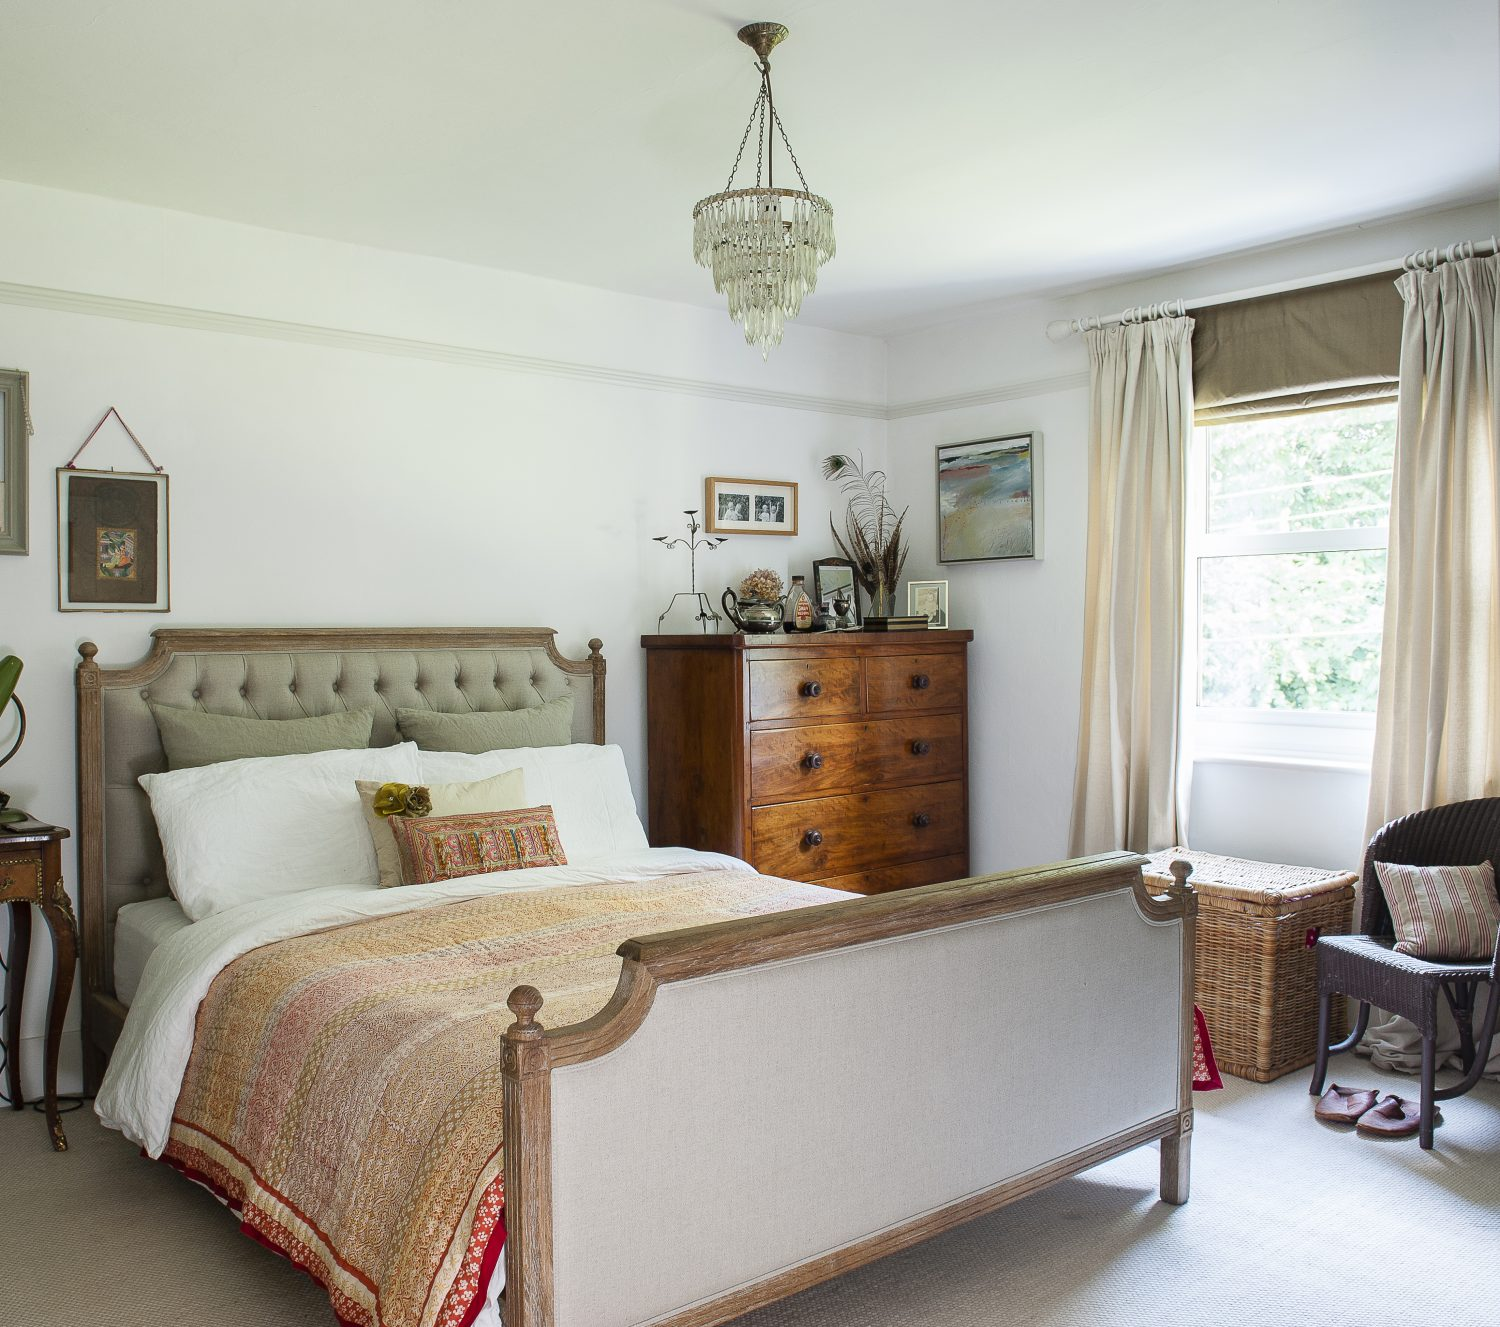 In the master bedroom, carefully arranged collections of treasures remind Karen of her travels and of loved people